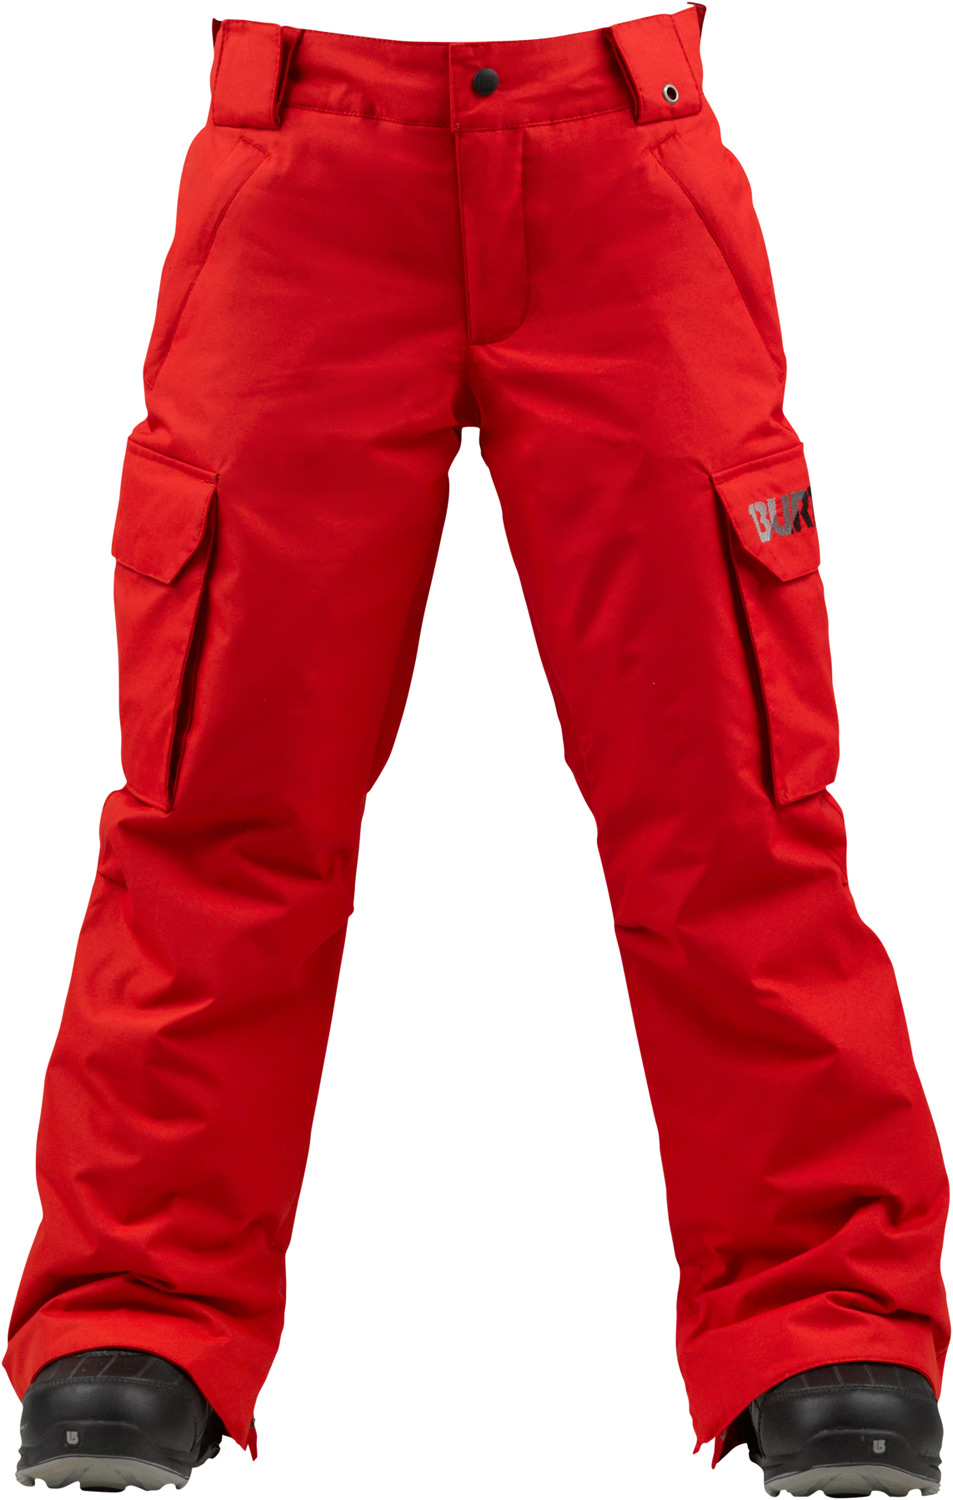 Snowboard The most waterproof pant in the line with versatile warmth and room for all your junk.Key Features of the Burton Exile Cargo Snowboard Pants: 10,000mm Waterproof 10,000g Breathability Waterproofing: DRYRIDE Durashell 2-Layer Twill Fabric and NEW Aquapel DWR Coating Warmth: mapped with Thermacore Insulation [60G Throughout] and Taffeta Lining Mesh-Lined Inner Thigh Vents Velcro Closure Back Pockets Zippered Handwarmer Pockets Cargo Pockets Includes Boys' Pant Features Package - $74.95